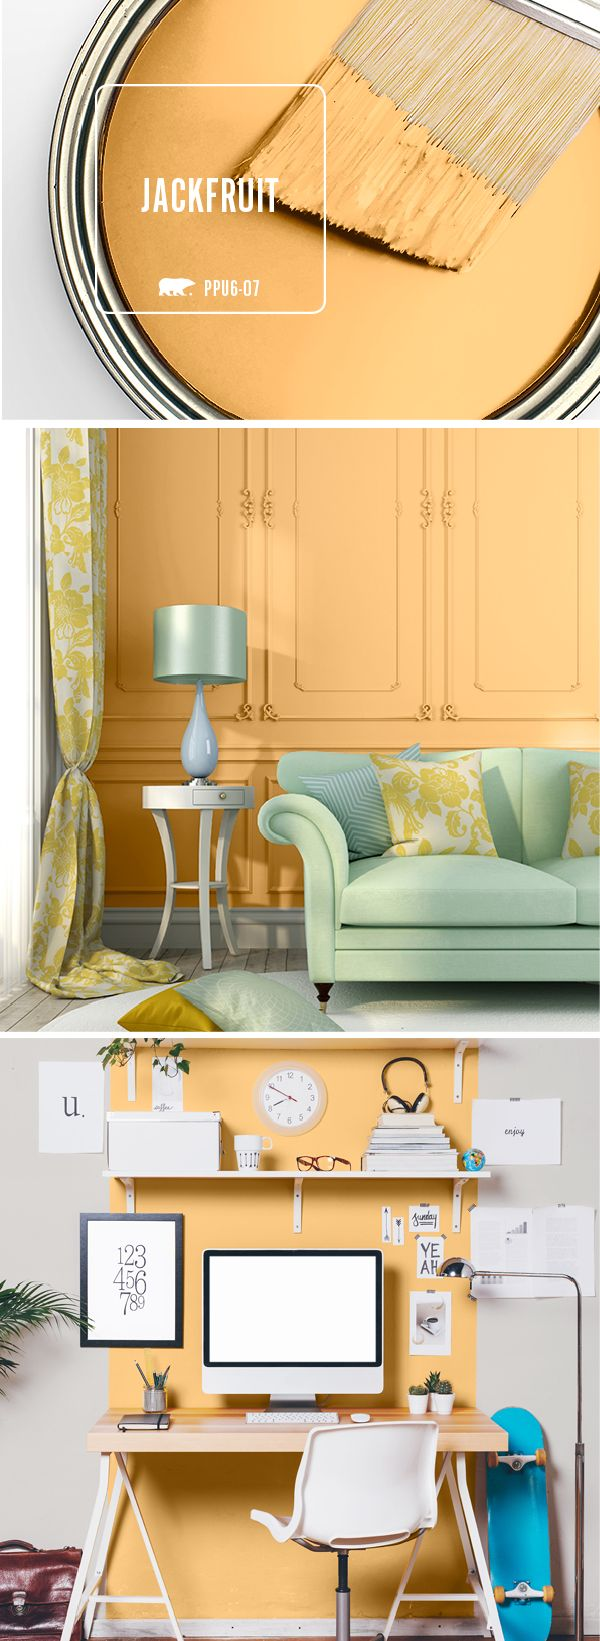 196 best Colorful Rooms and Spaces images on Pinterest | Behr paint ...